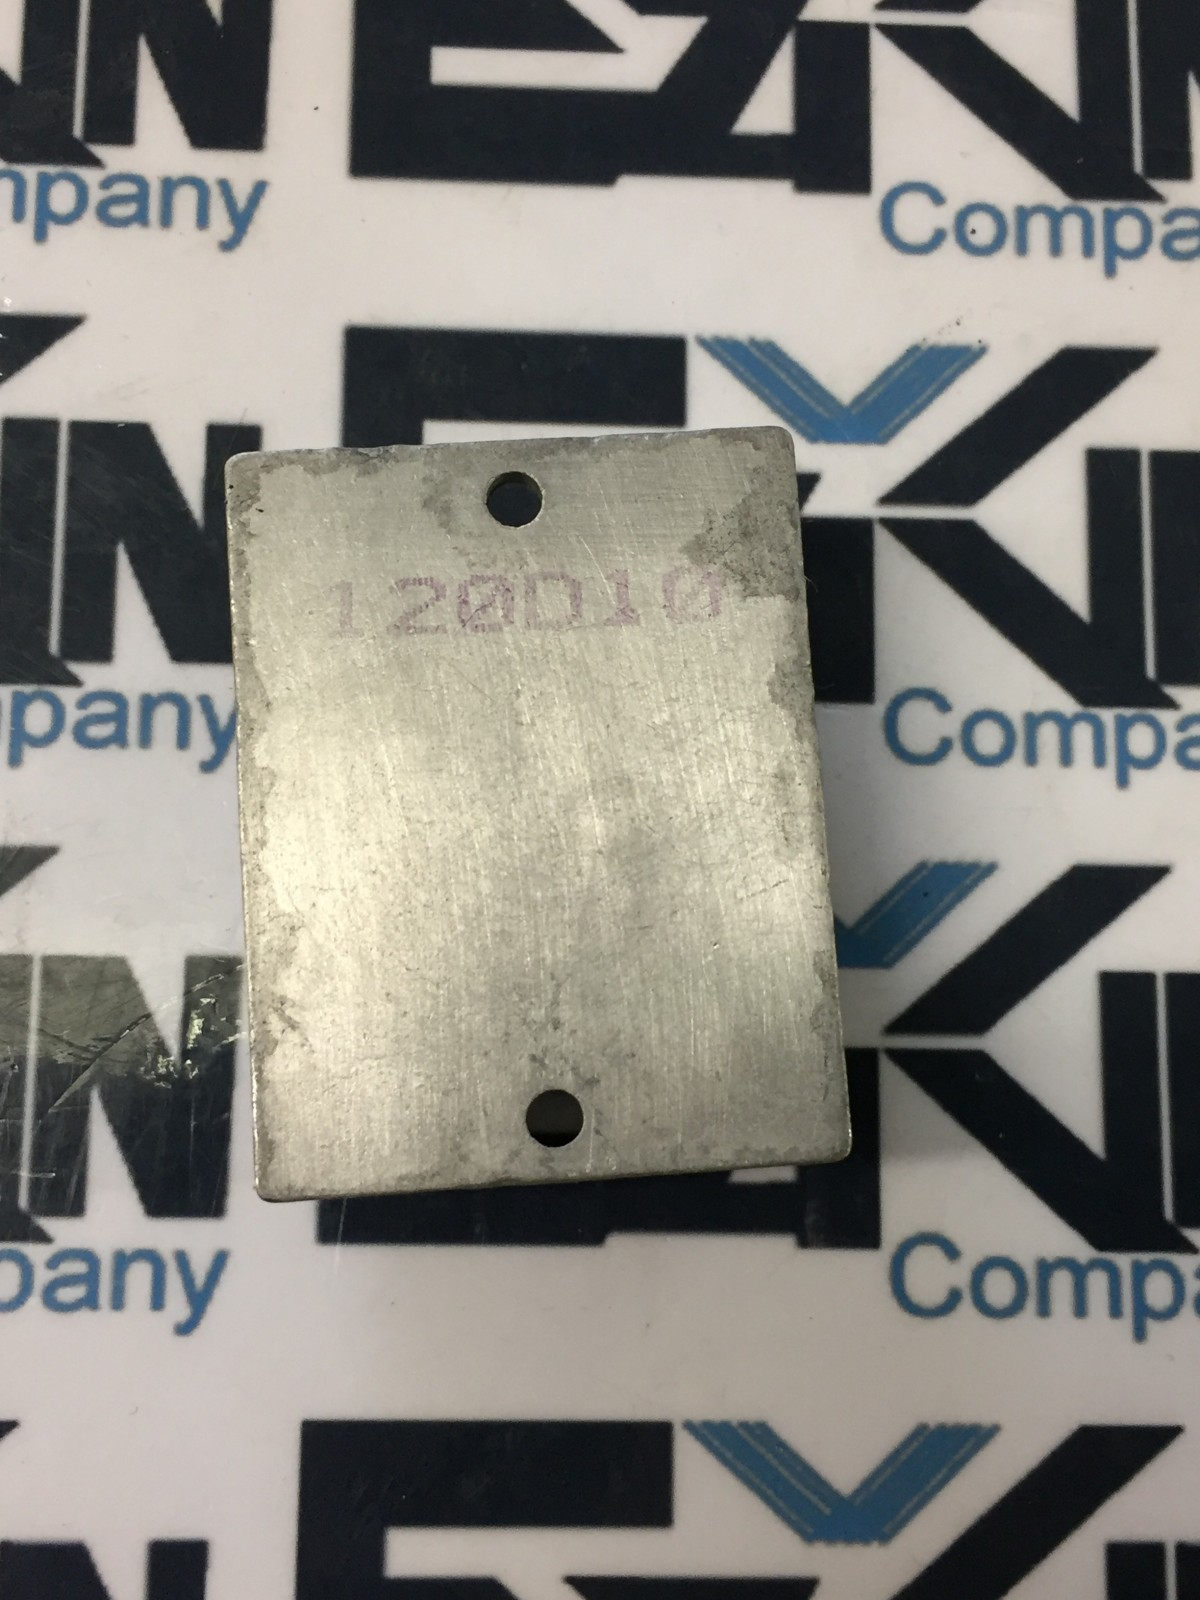 Opto22 model 120S10 solid state relay 3-32vdc control